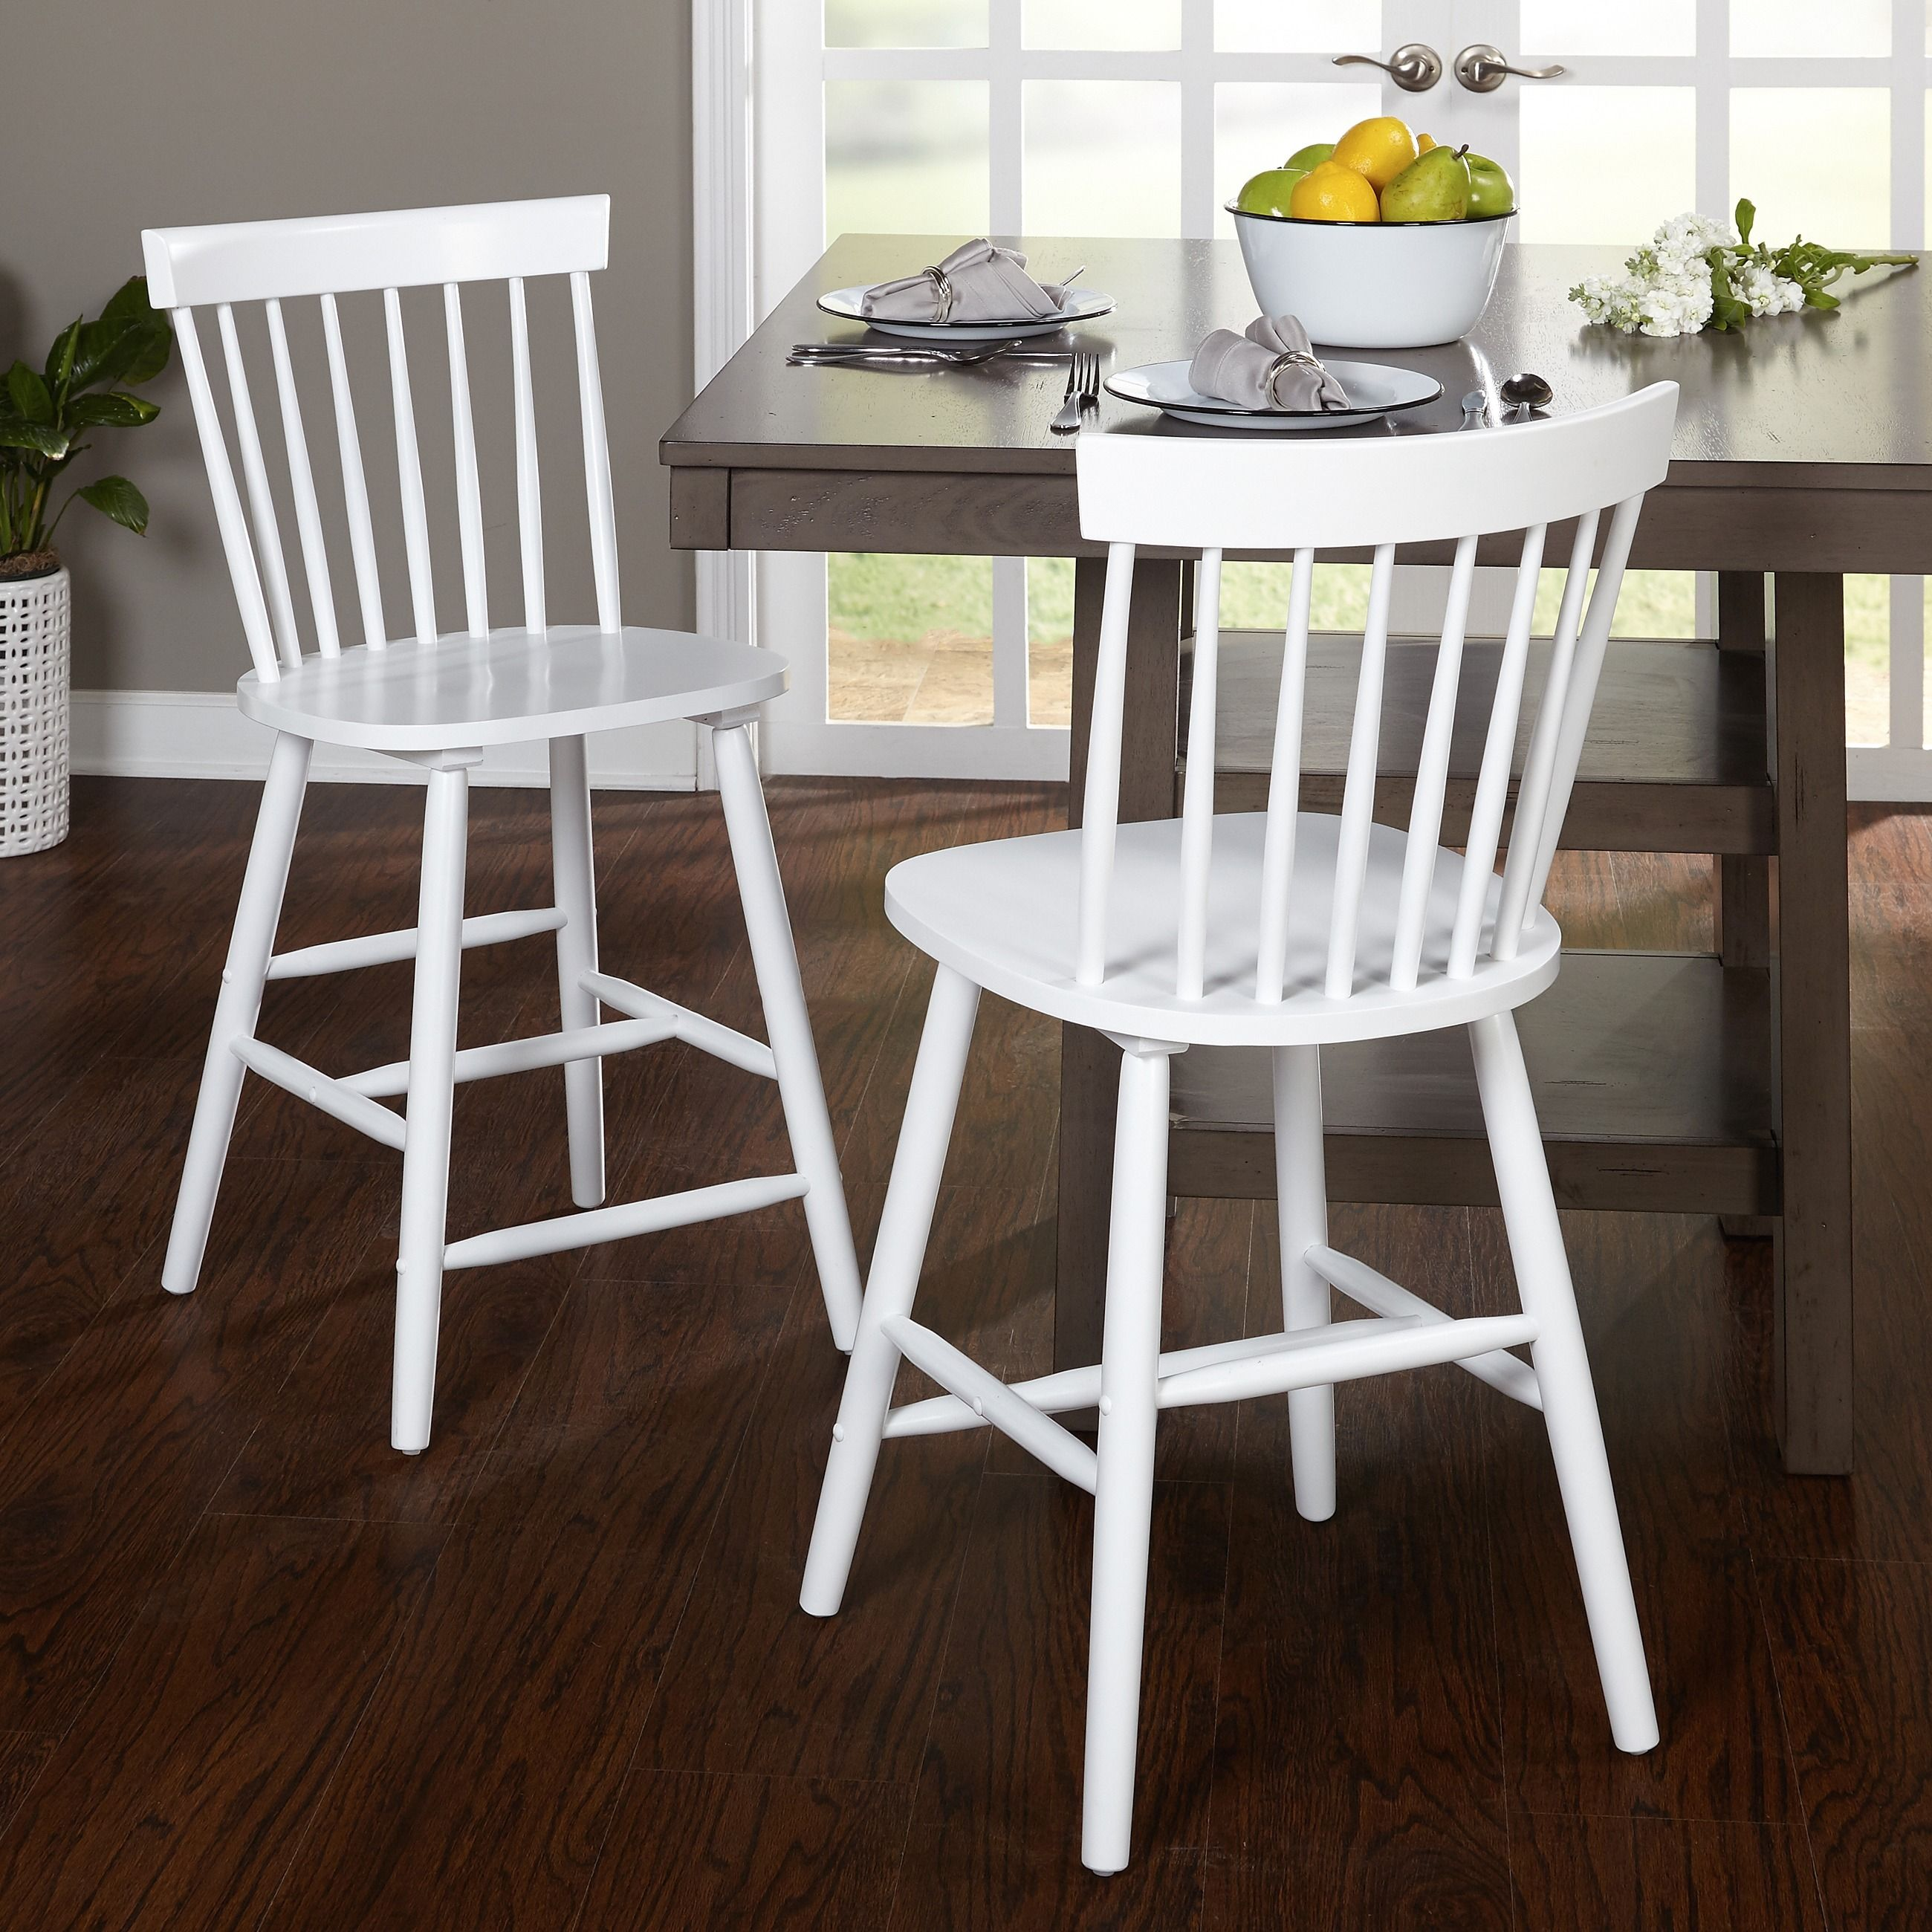 simple living 24 inch venice counter stools set of 2 venice stool